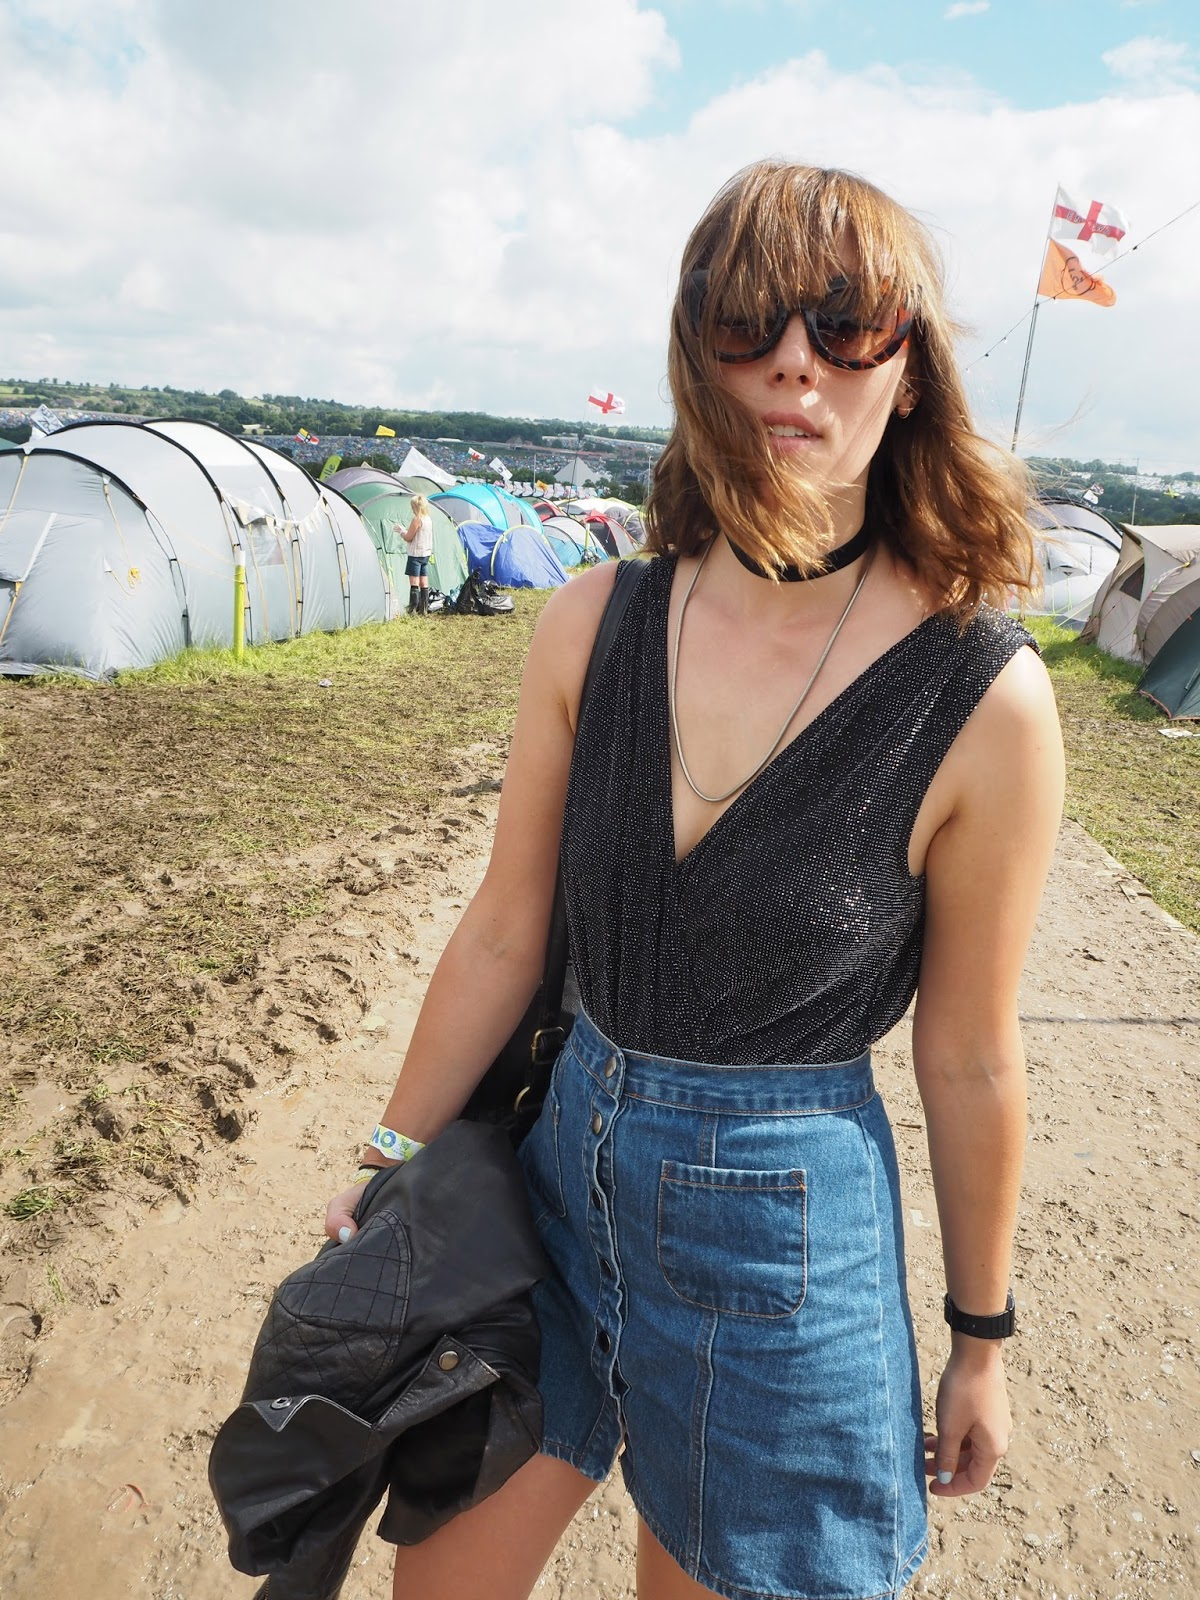 Sassy sixties festival outfit at Glastonbury 2016